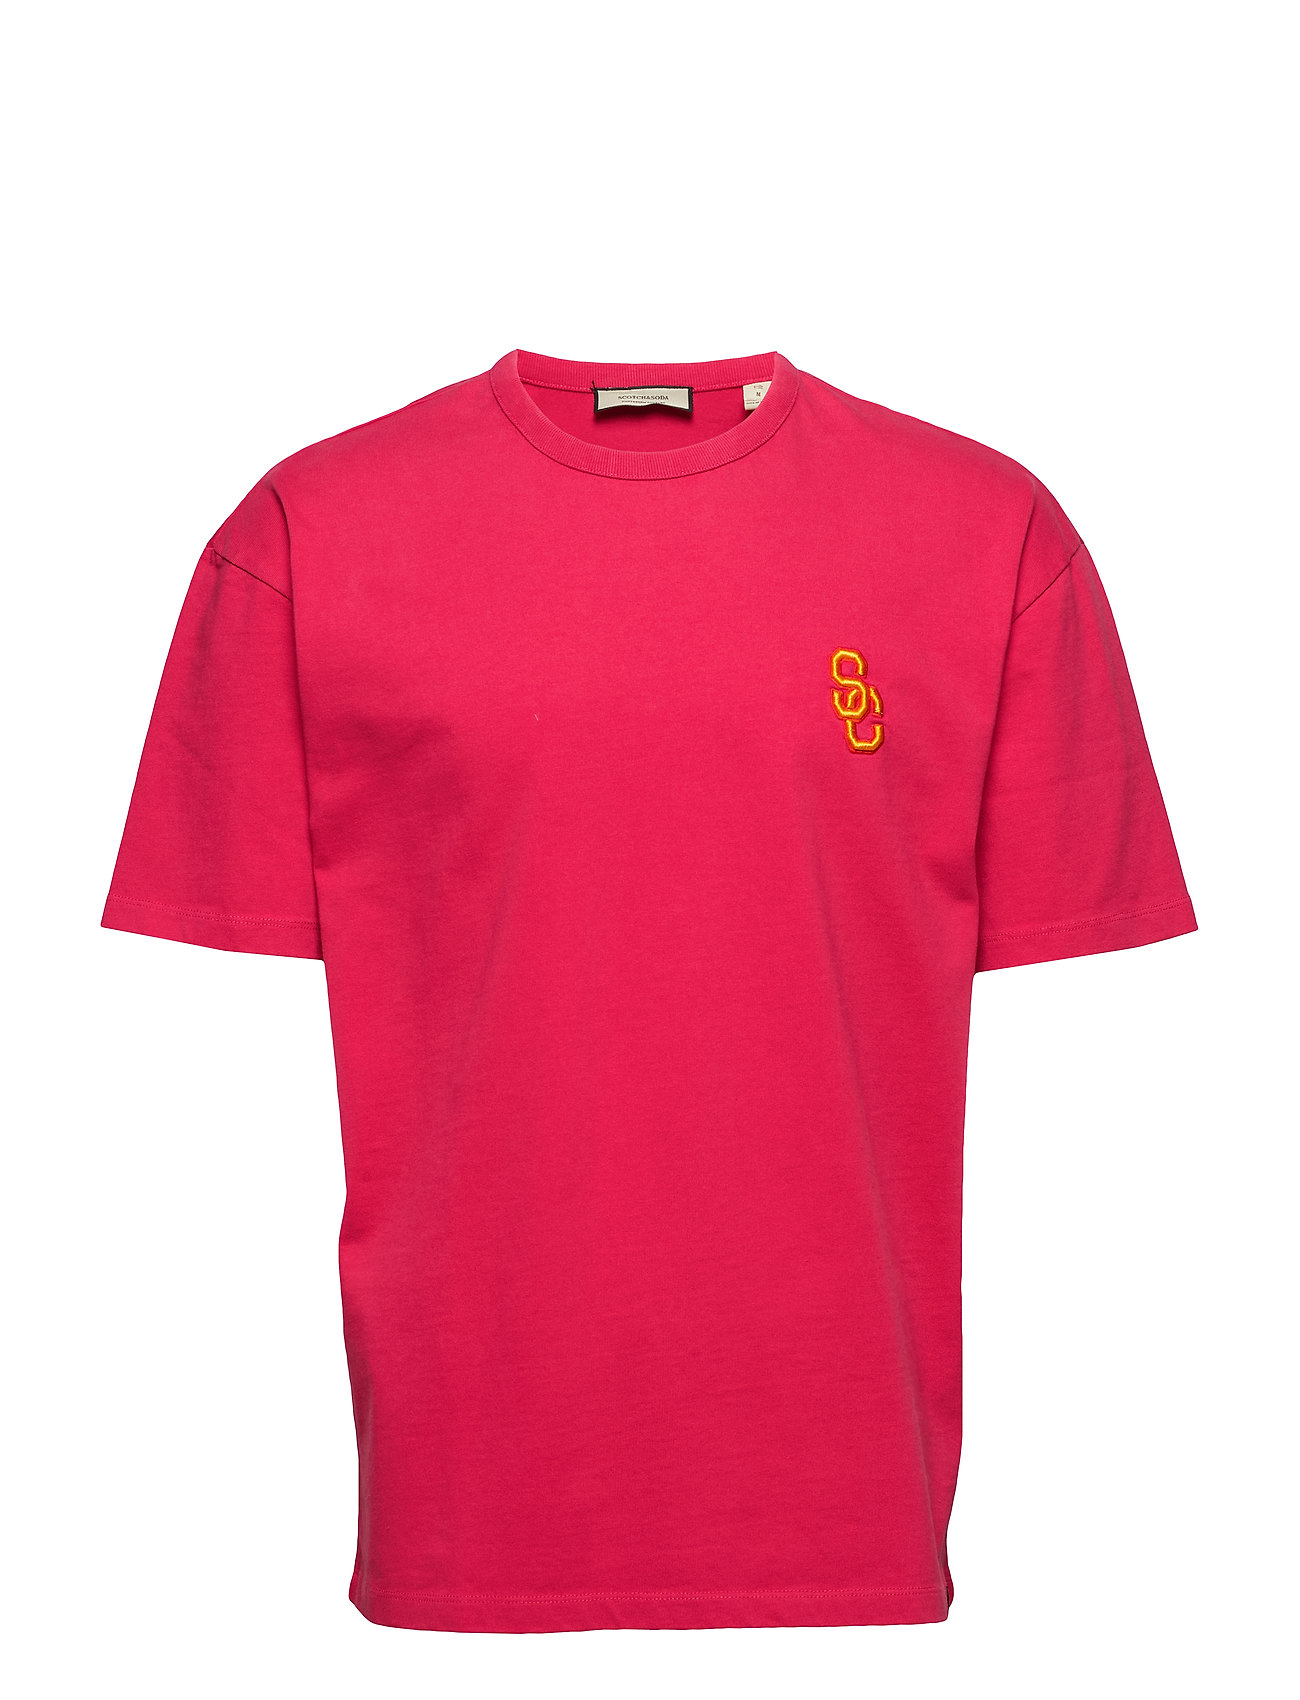 Shoulder Tee WithmagentaScotchamp; Oversized Heavy Jersey Soda In Dropped Quality m0OvNn8wy